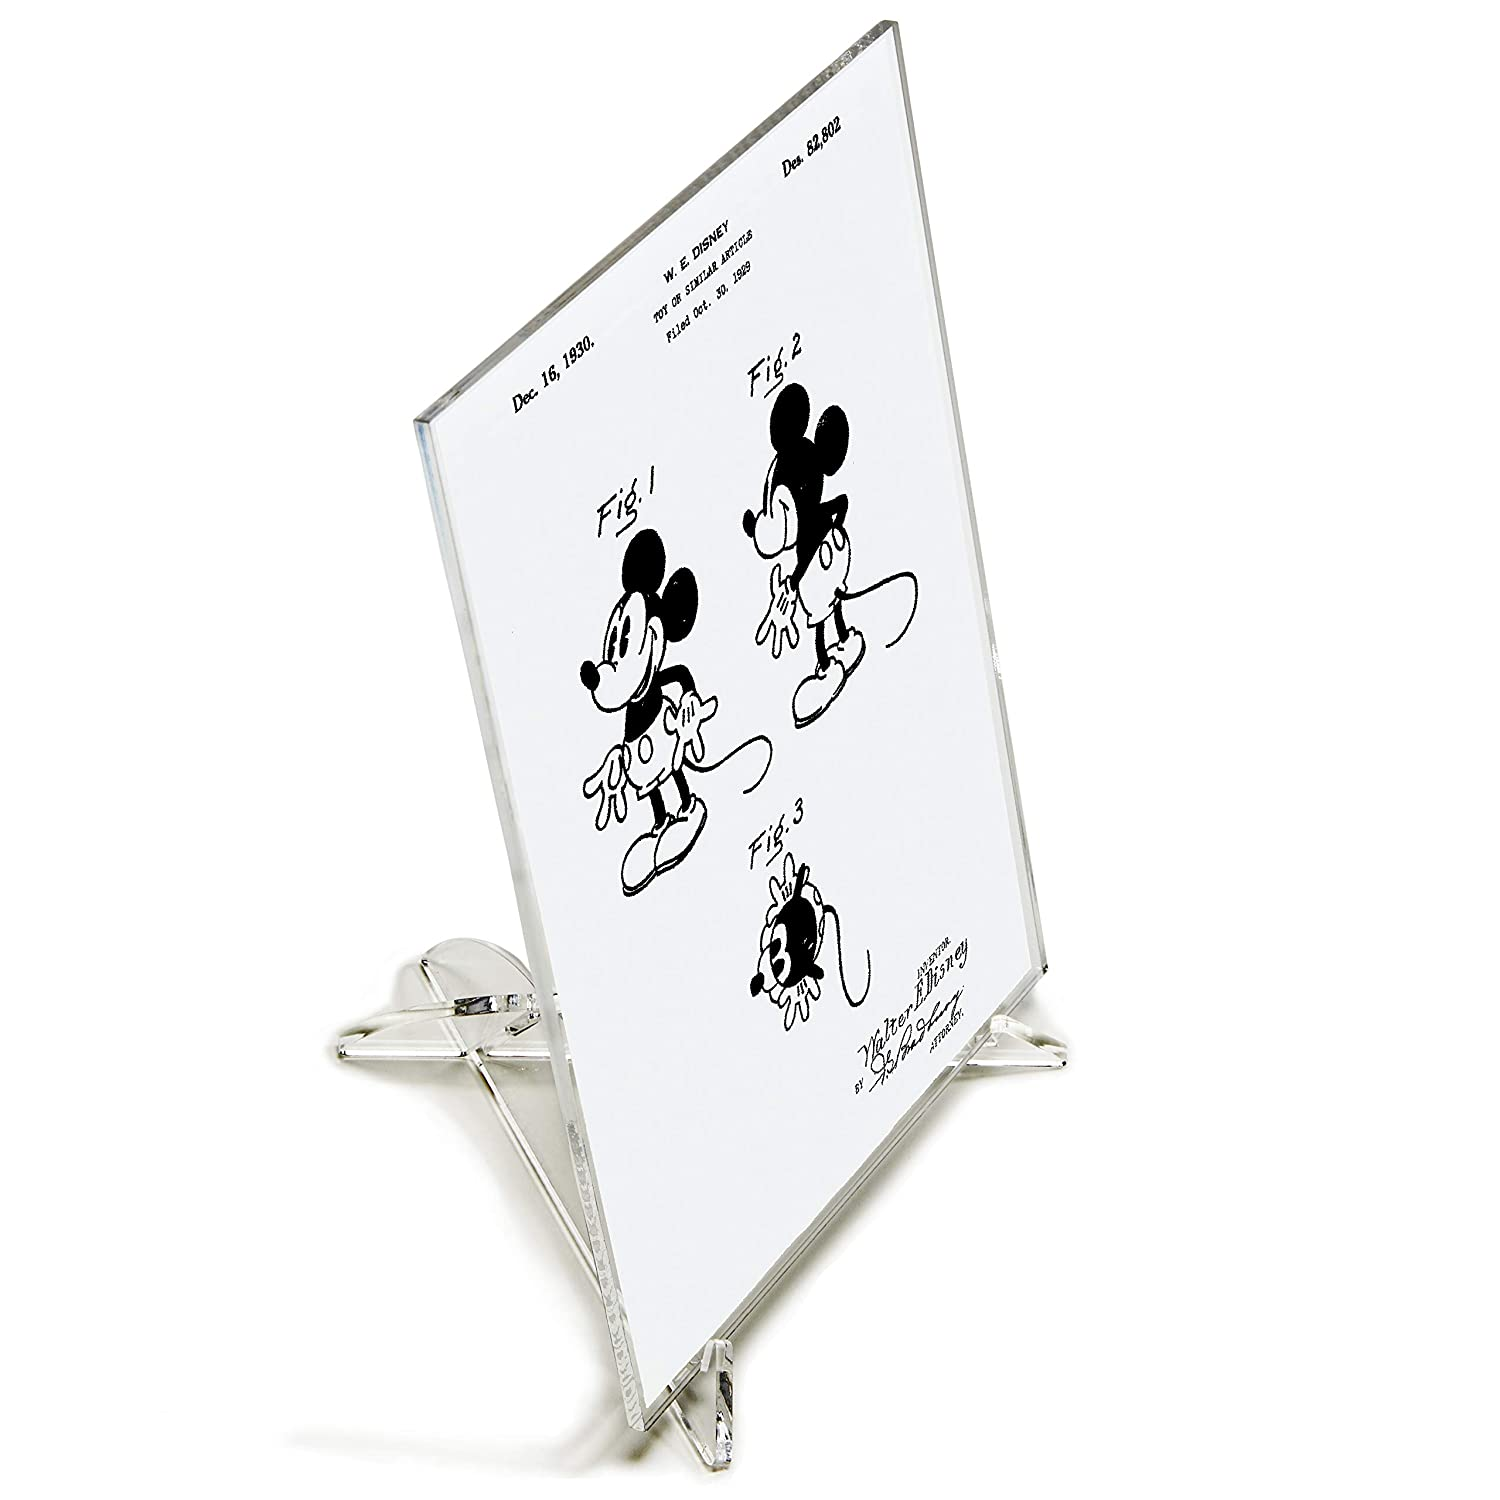 Mickey Mouse Patent Print with Stand Silver Image on Black Background Screened on Acrylic Desk Art Blast 5 x 7